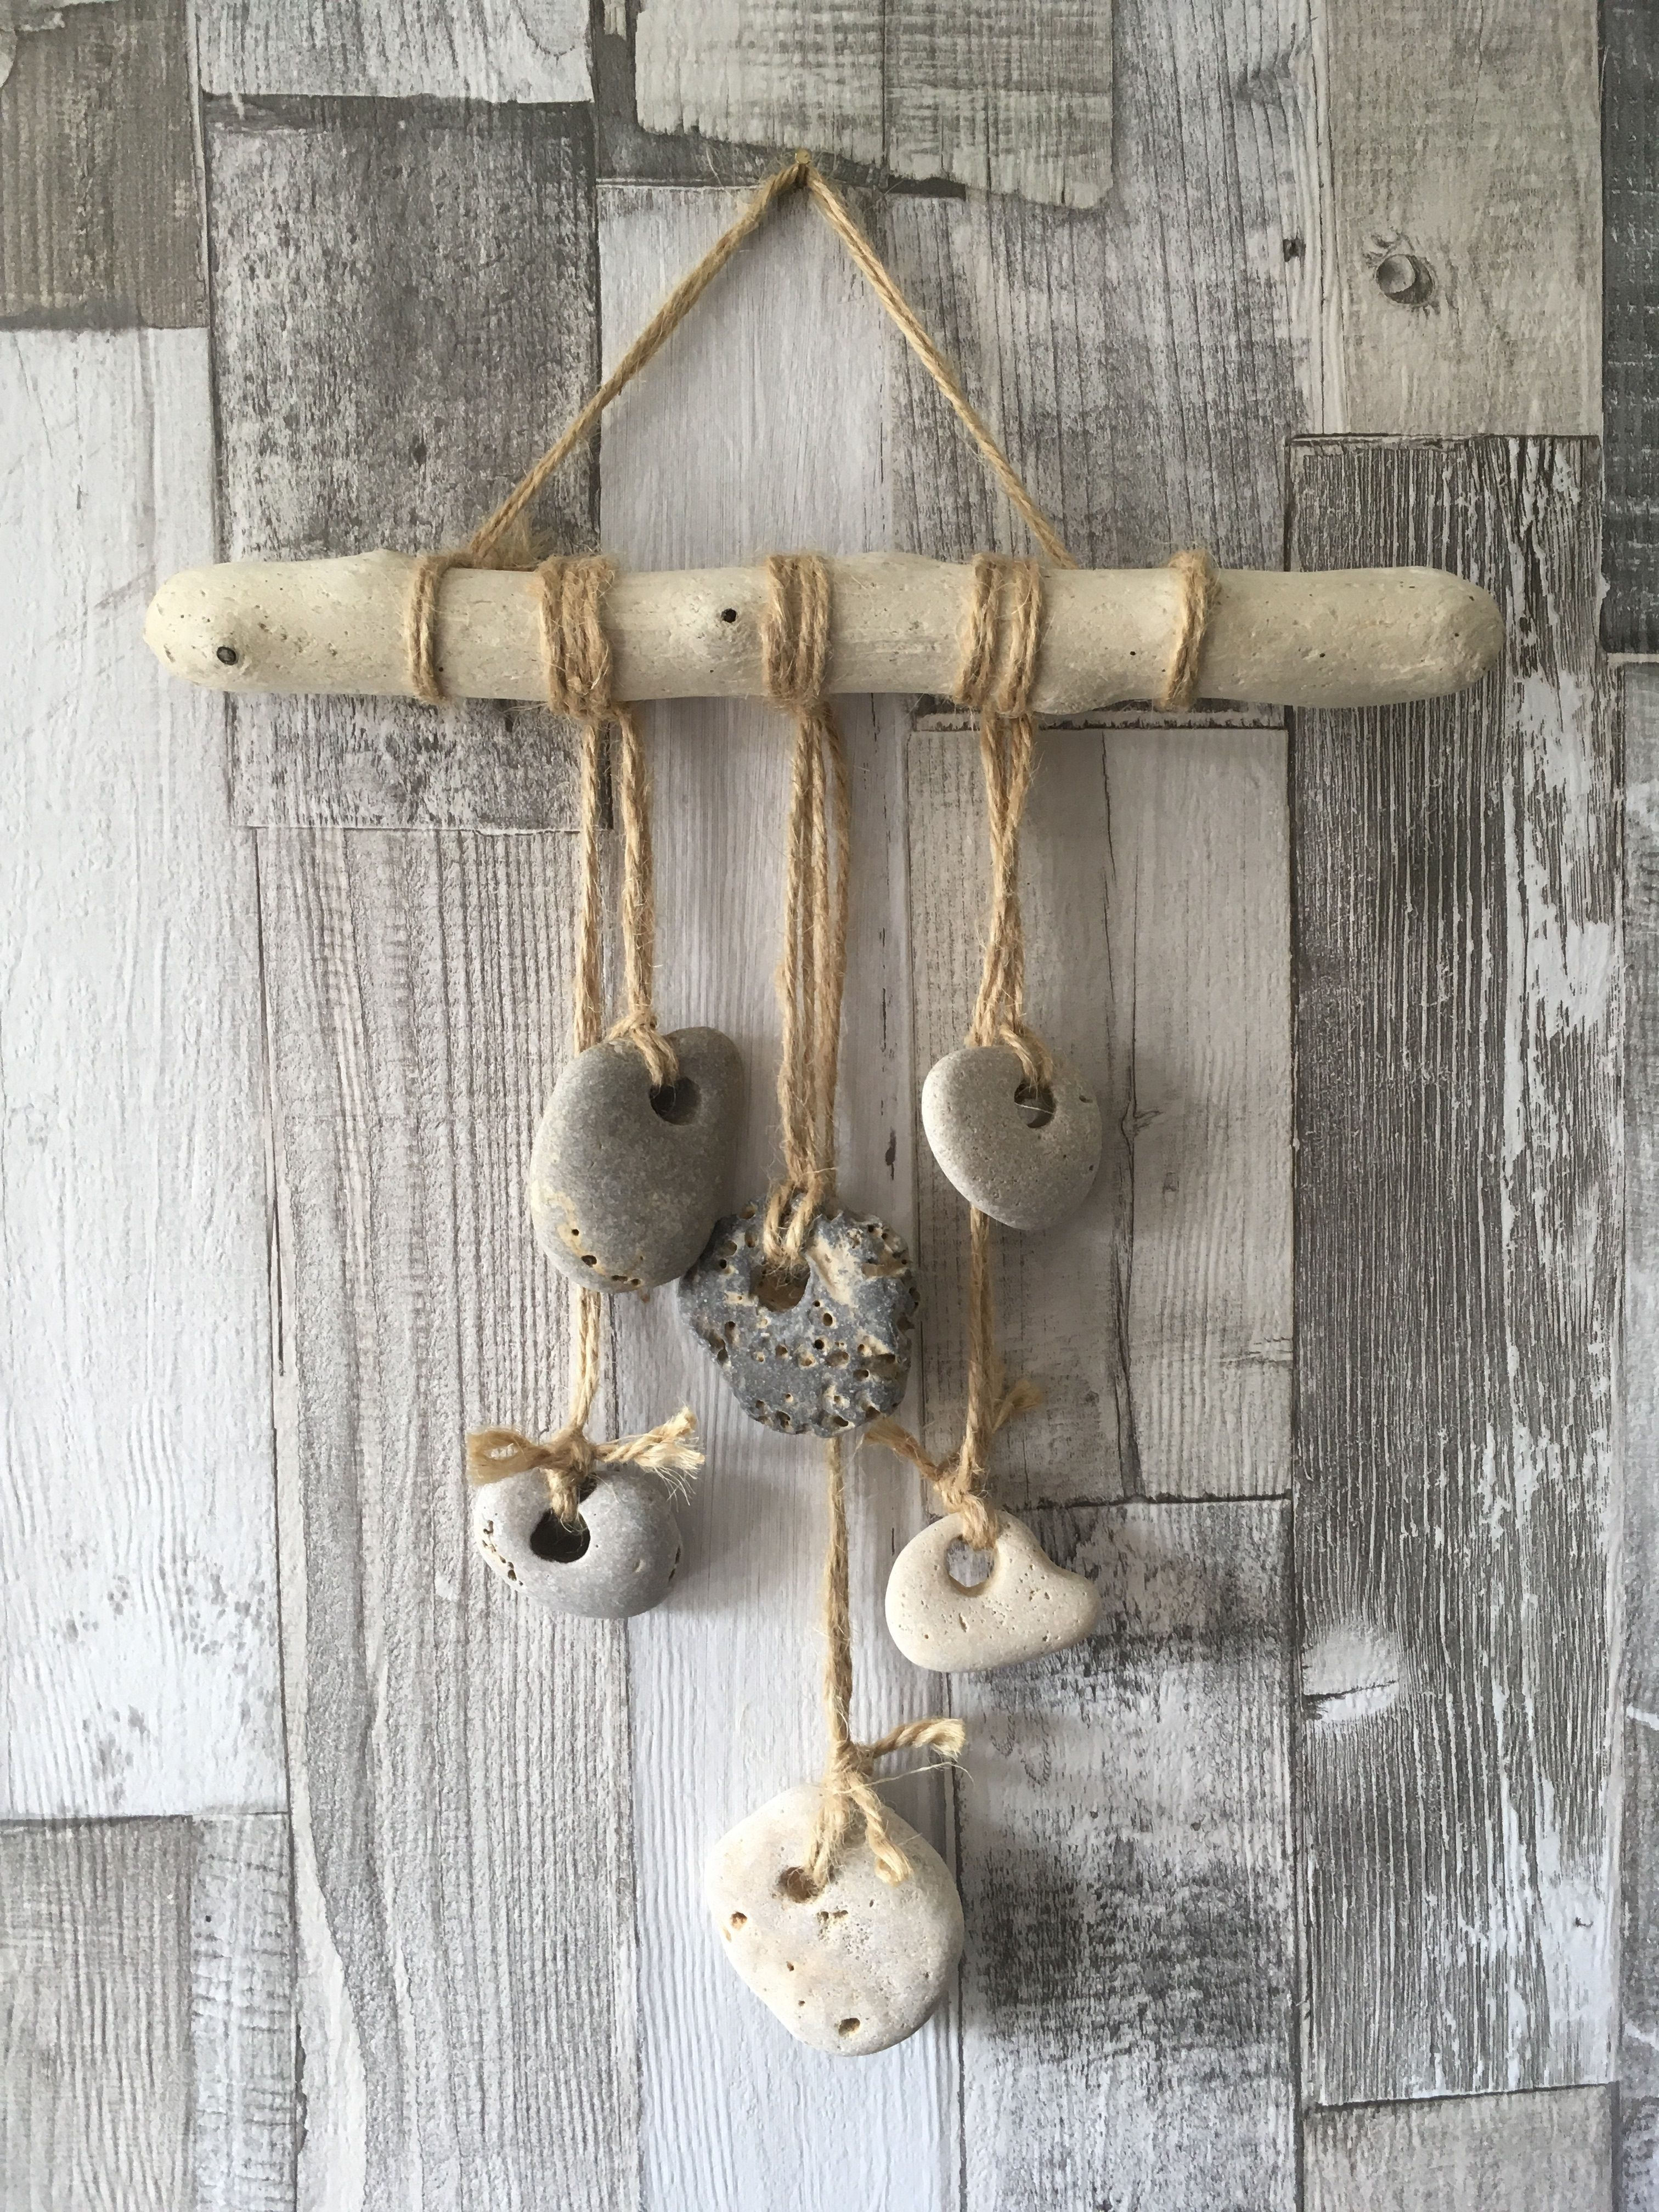 Hag Stone And Driftwood Coastal Decor Stone Crafts Driftwood Diy Driftwood Art Shop the top 25 most popular 1 at the best prices! hag stone and driftwood coastal decor